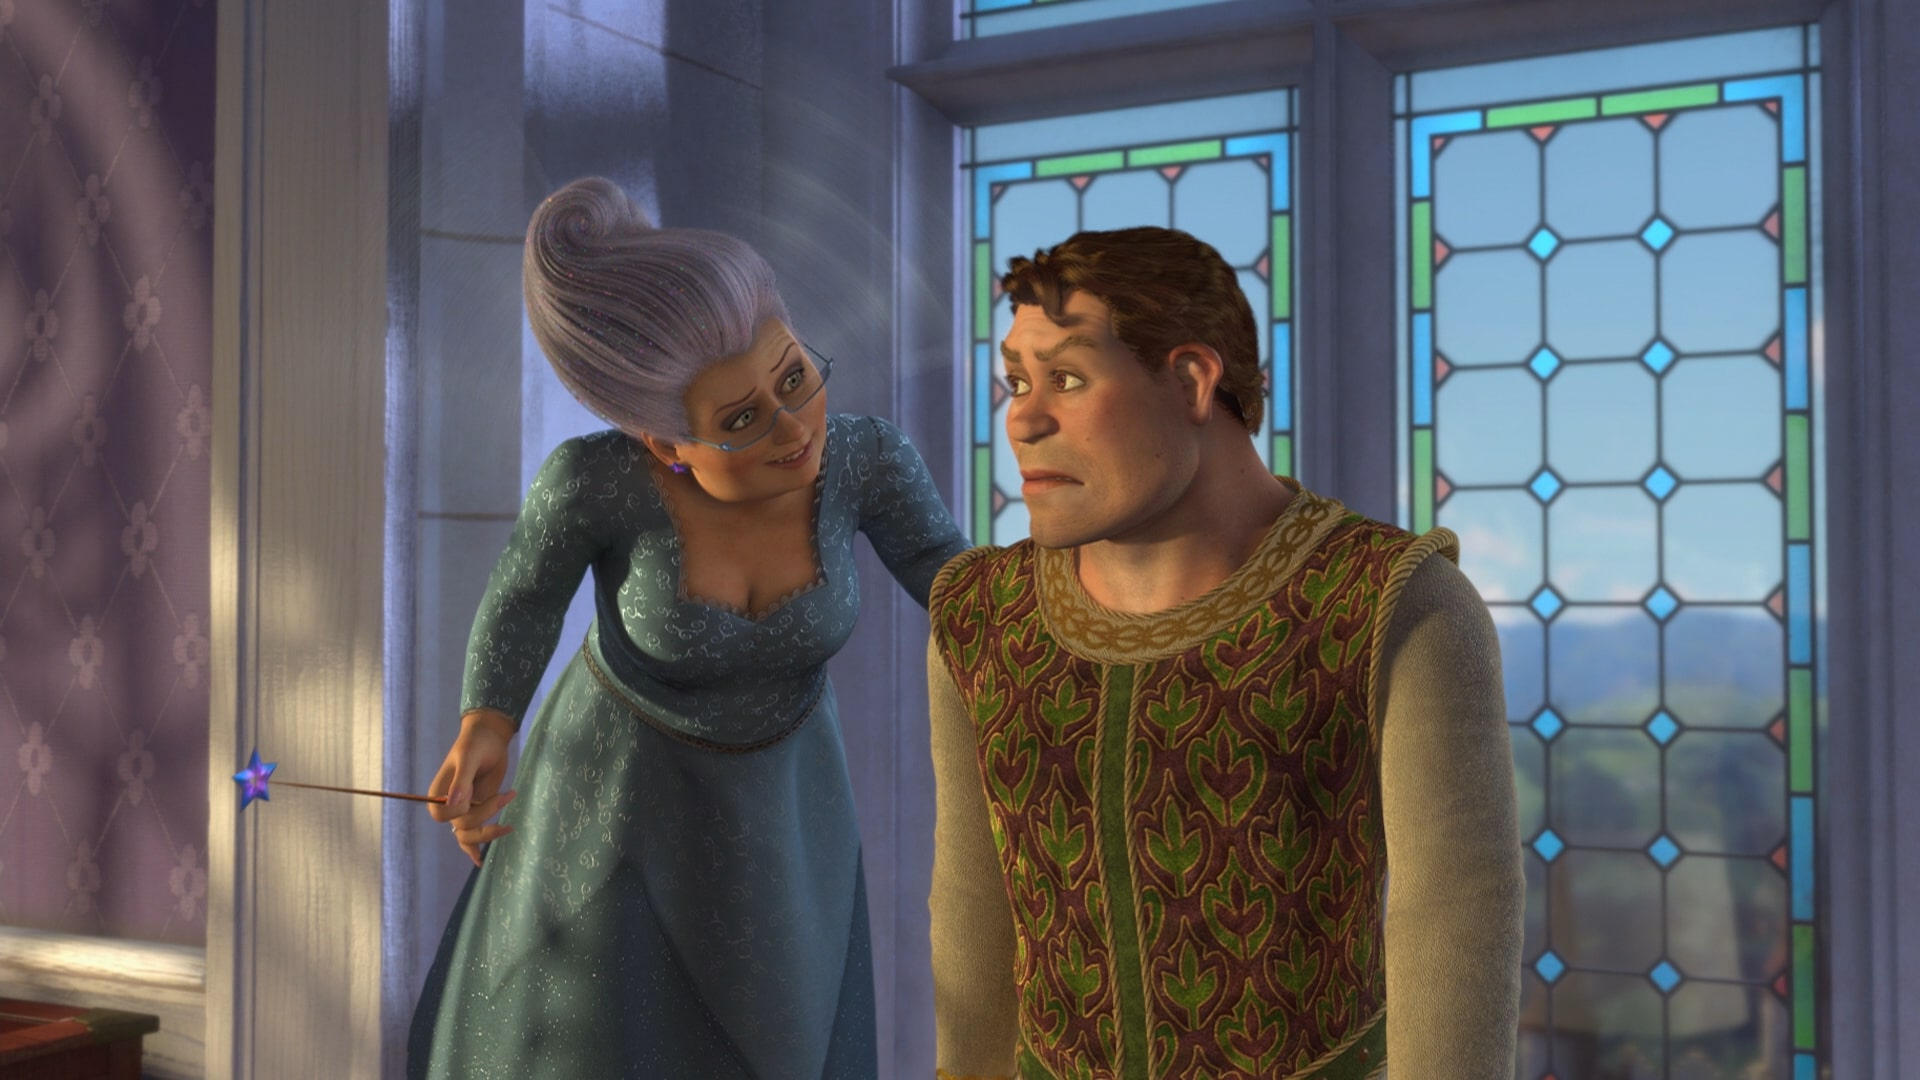 Fairy godmother human shrek - shrek 2Shrek 3 Human